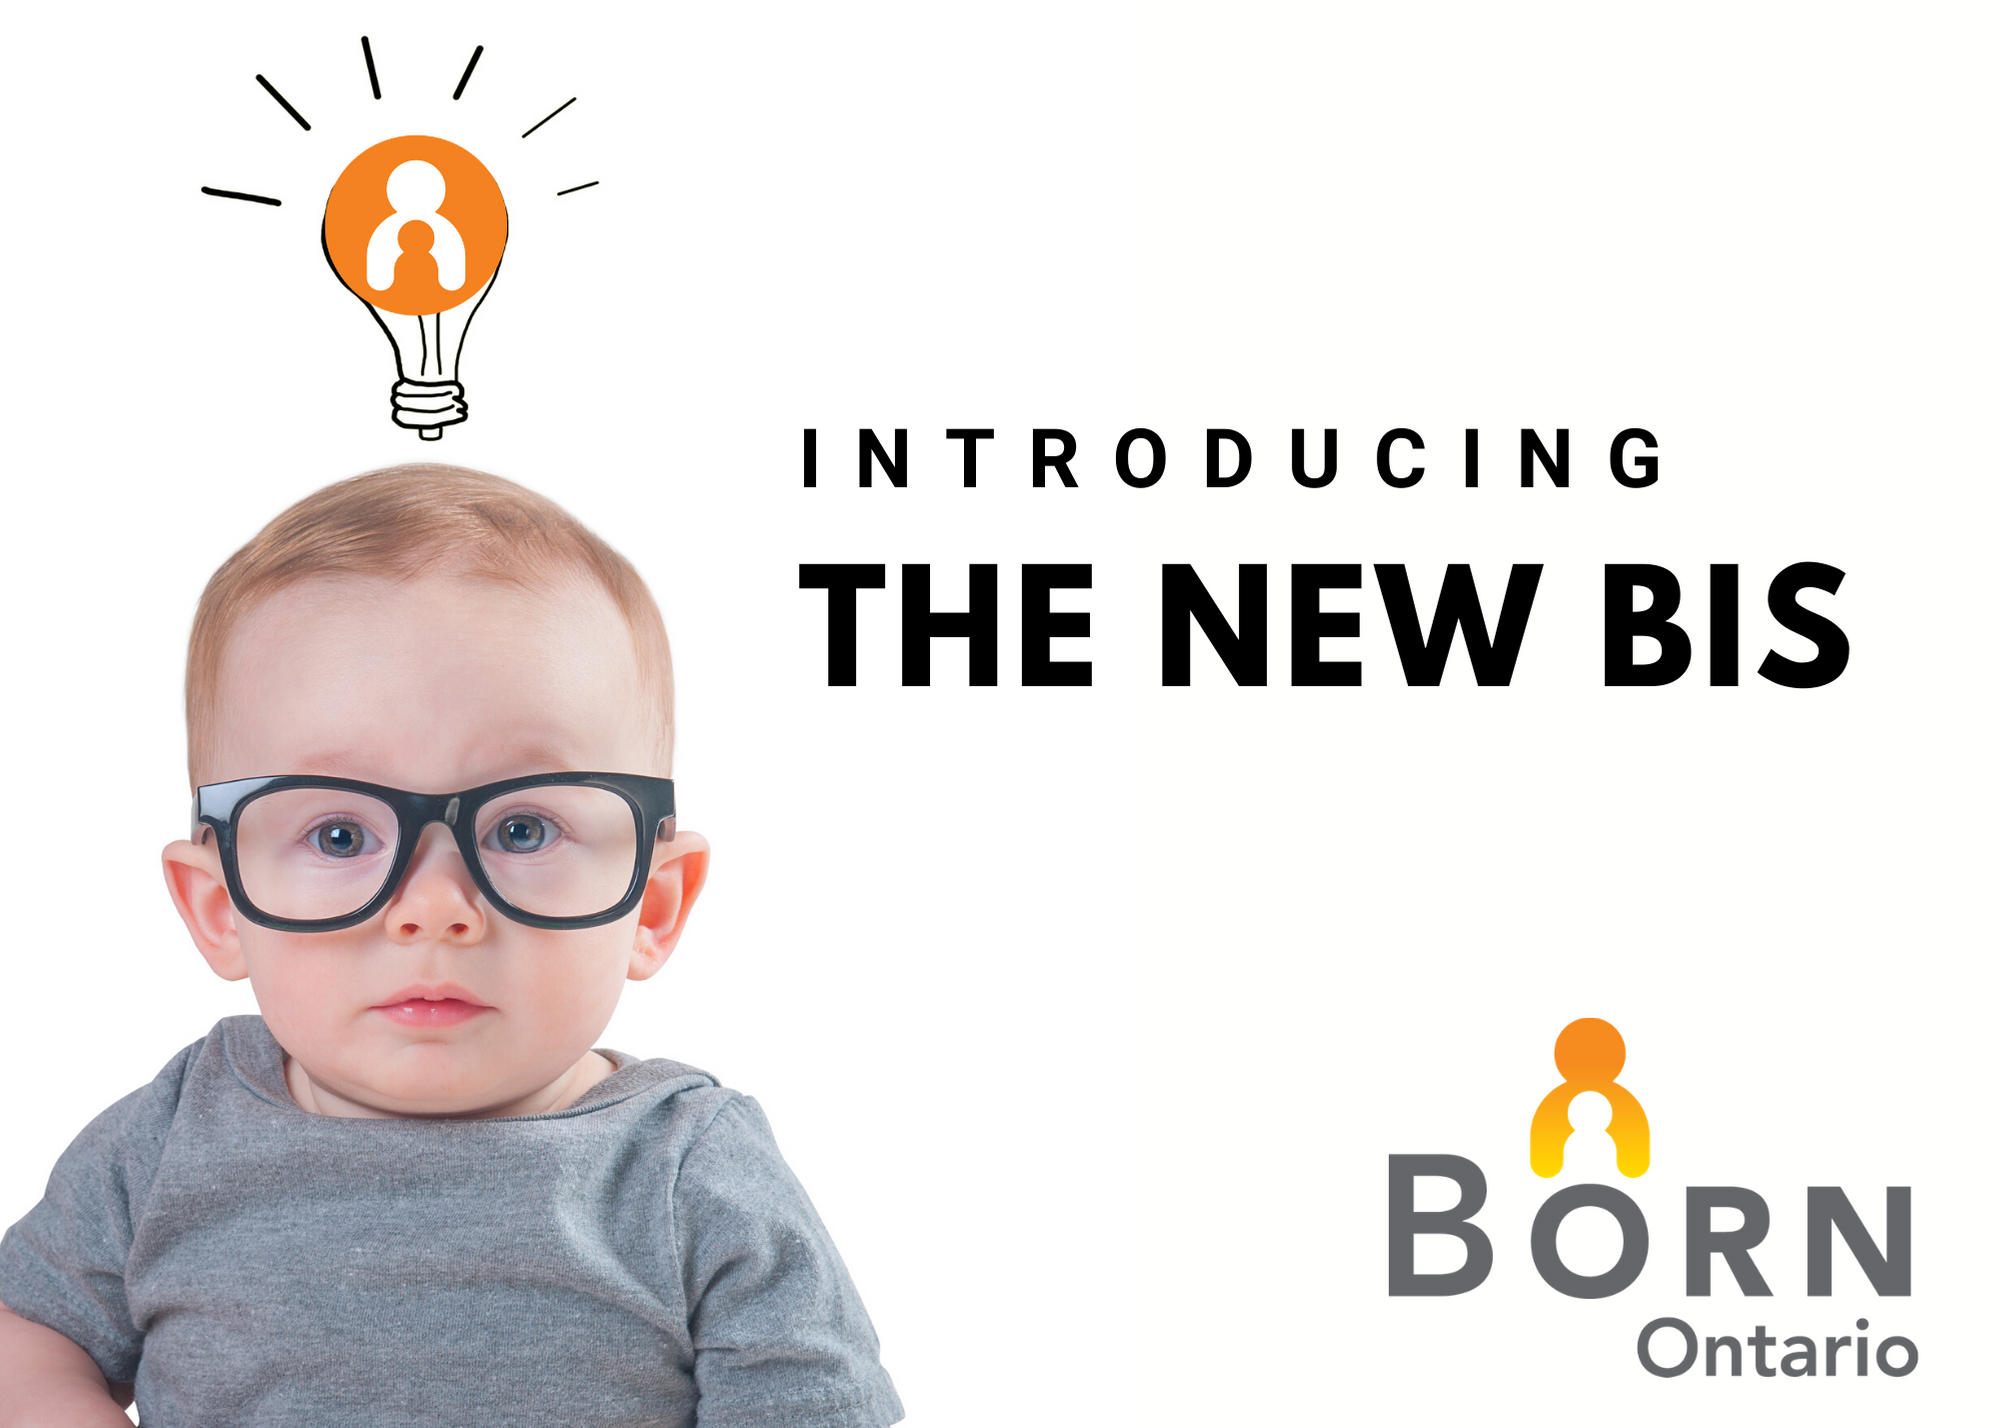 baby with glasses and a light bulb over his head, text saying 'Introducing the new BIS'